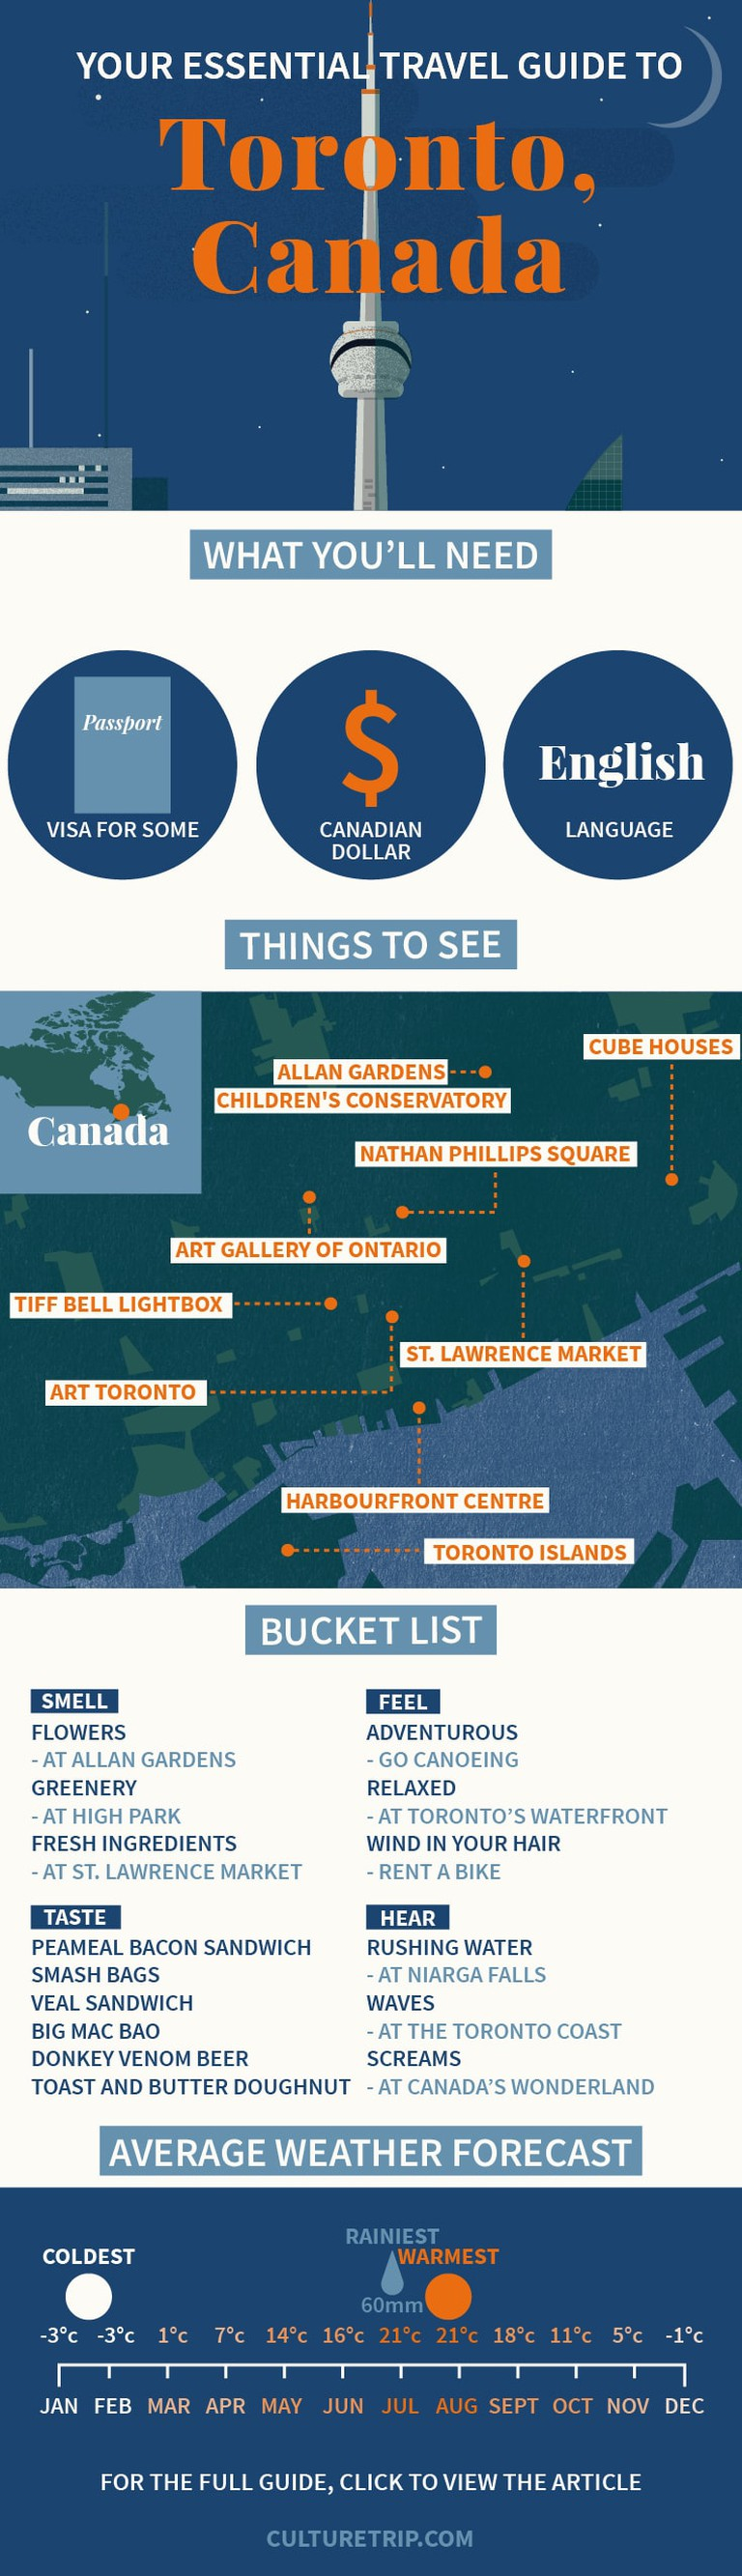 A travel guide for planning your trip to Toronto, Canada.